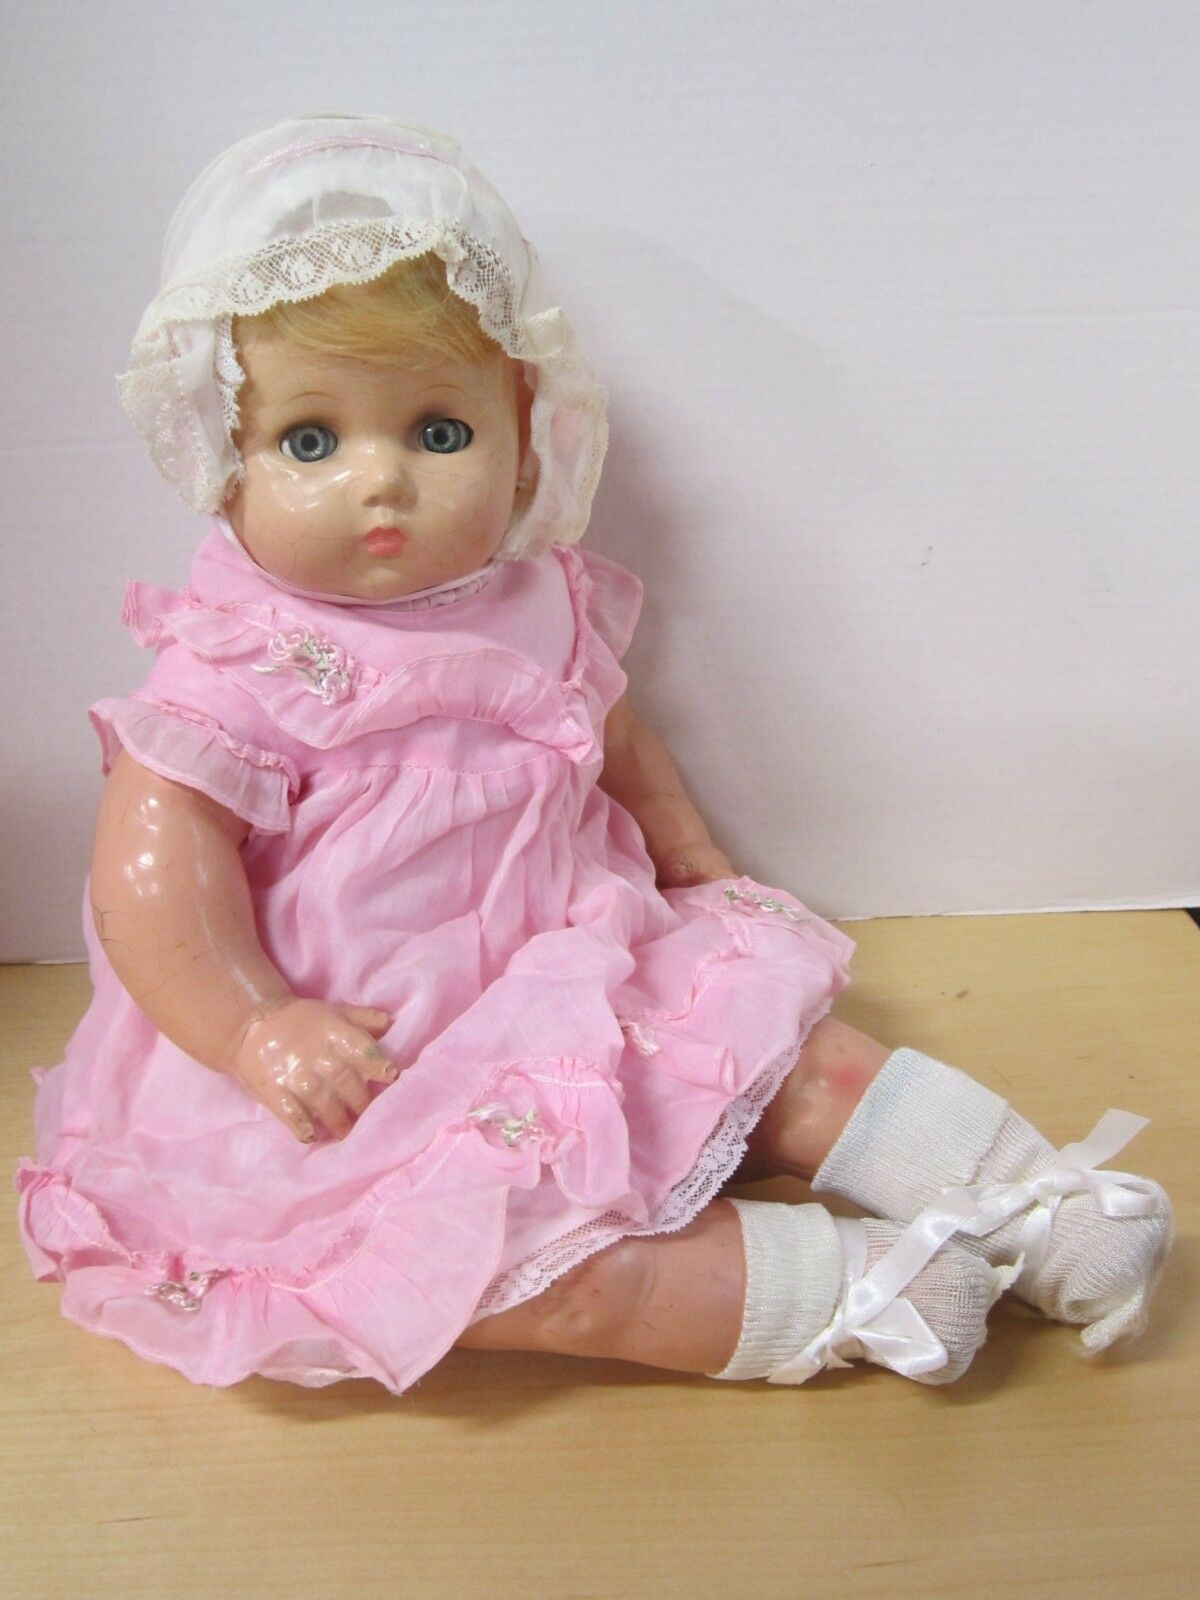 23  unmarked composition life Dimensione bambino  with 'flirty' eyes - nice vintage outfit  punto vendita